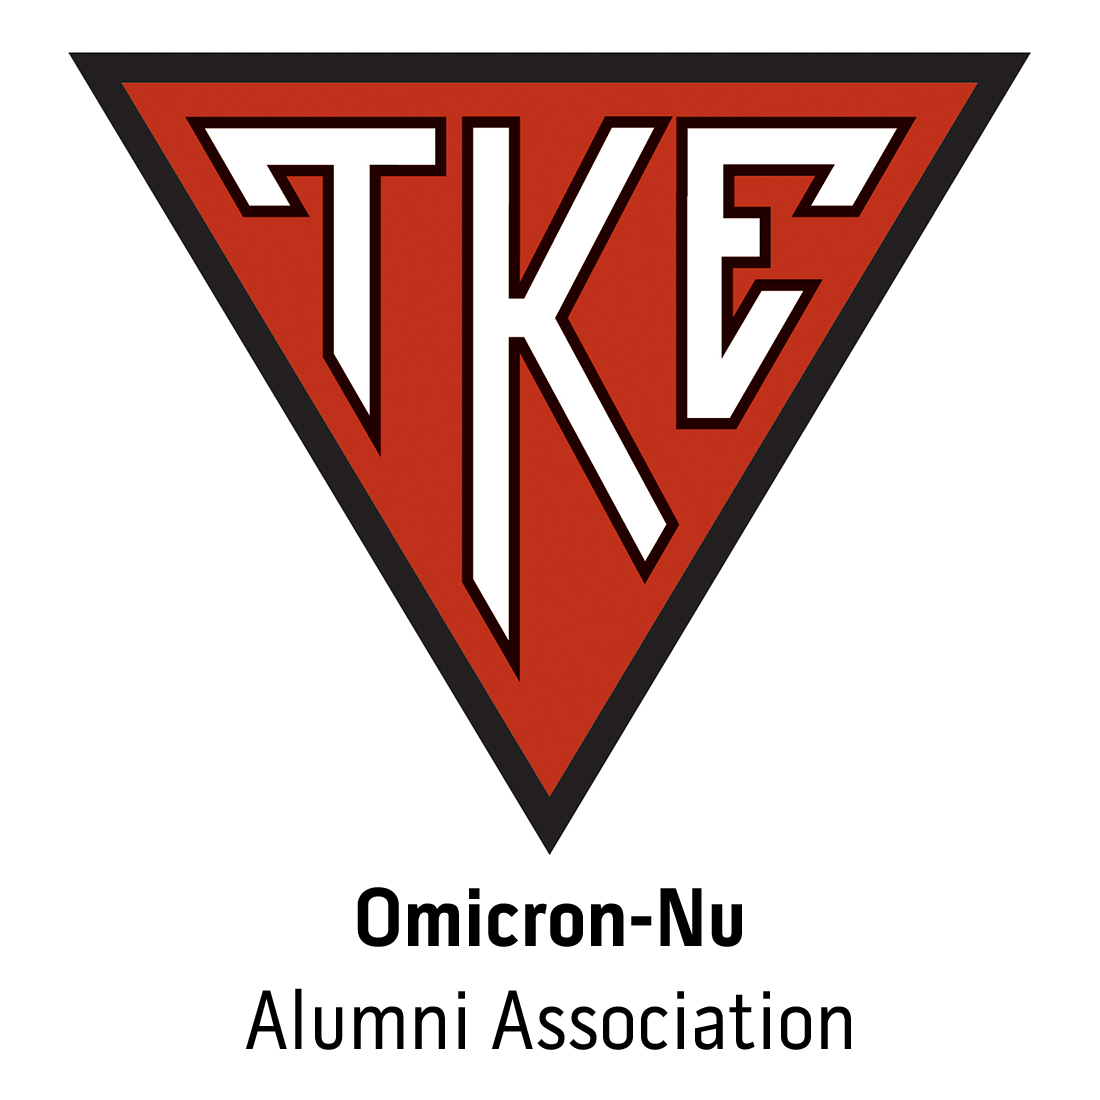 Omicron-Nu Alumni Association at Florida Institute of Technology